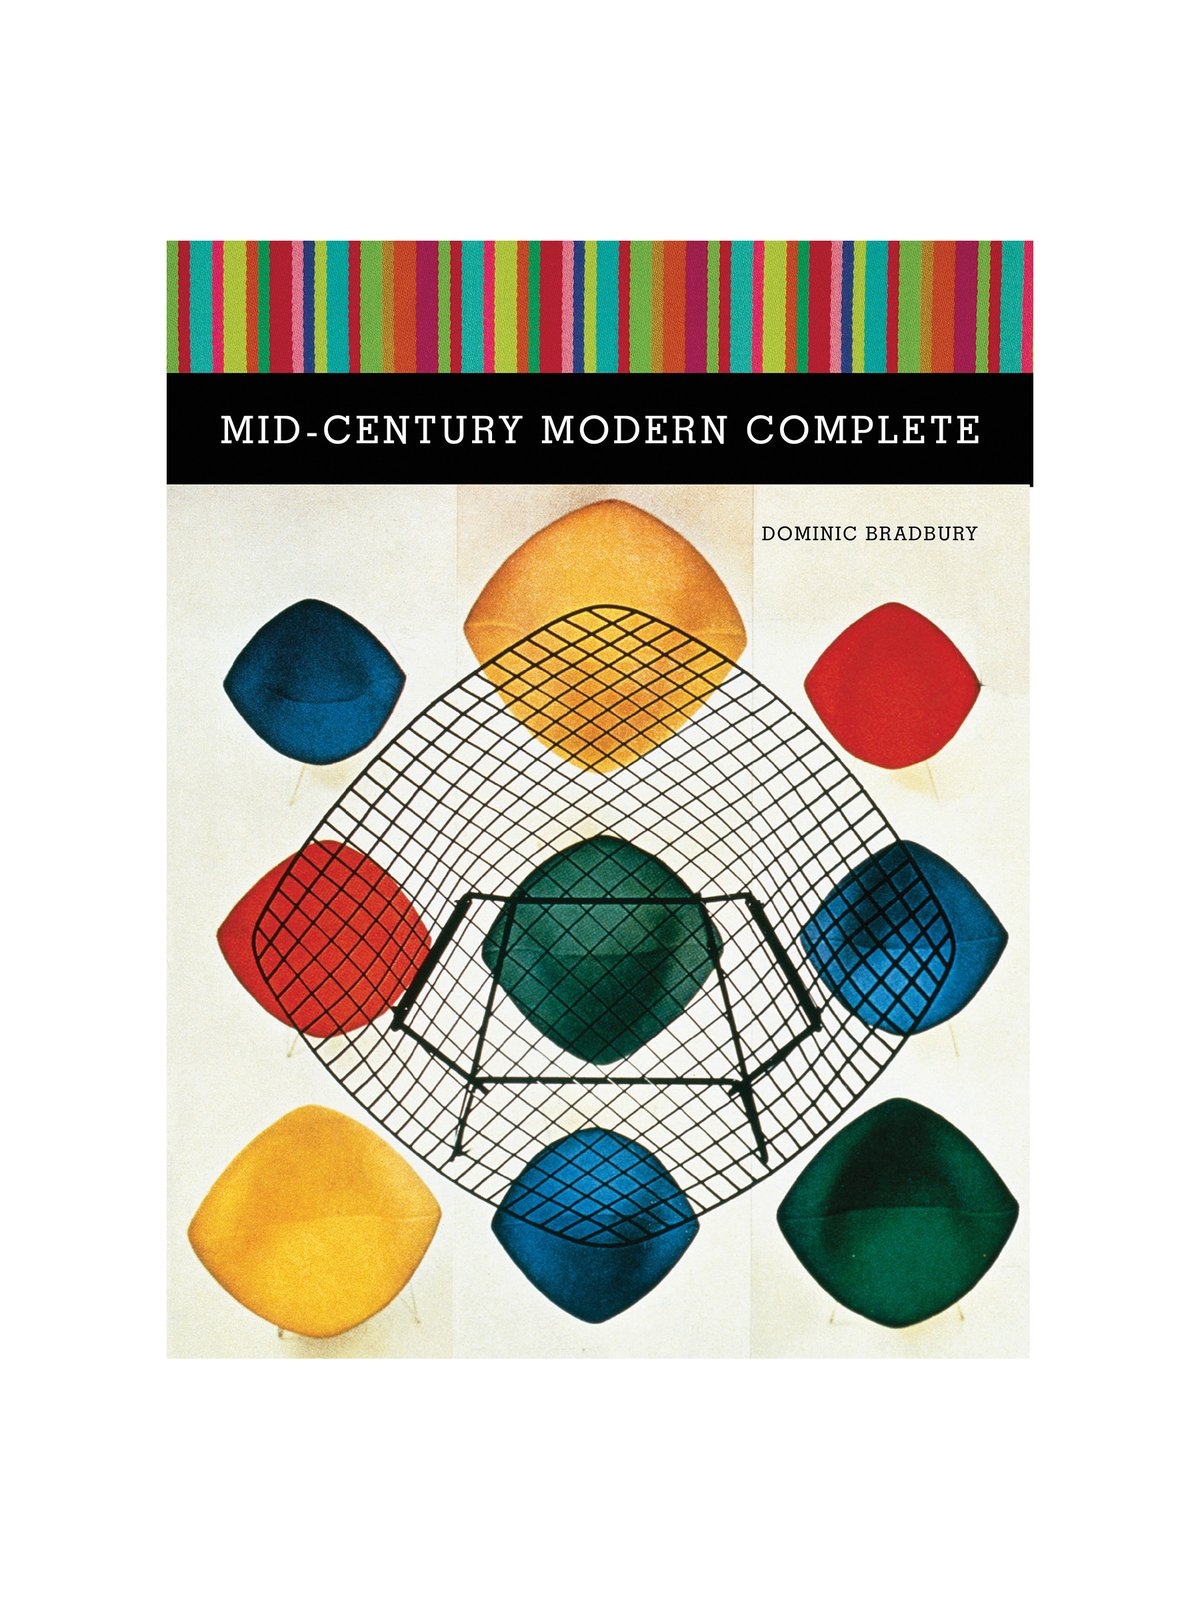 Mid-Century Modern Complete by Dominic Bradbury, $125 from abramsbooks.com  Between penning stories for Dwell, writer Dominic Bradbury has created the definitive survey of midcentury design. Divided into sections on furniture, lighting, glass and ceramics, textiles, and more, the book covers an impressive number of practitioners ranging from the well-known to the more obscure. Essays on collecting design and the role of textiles in the midcentury home are not to be missed.  Mid Century from Holiday Gift Guide 2014: For the Bibliophile